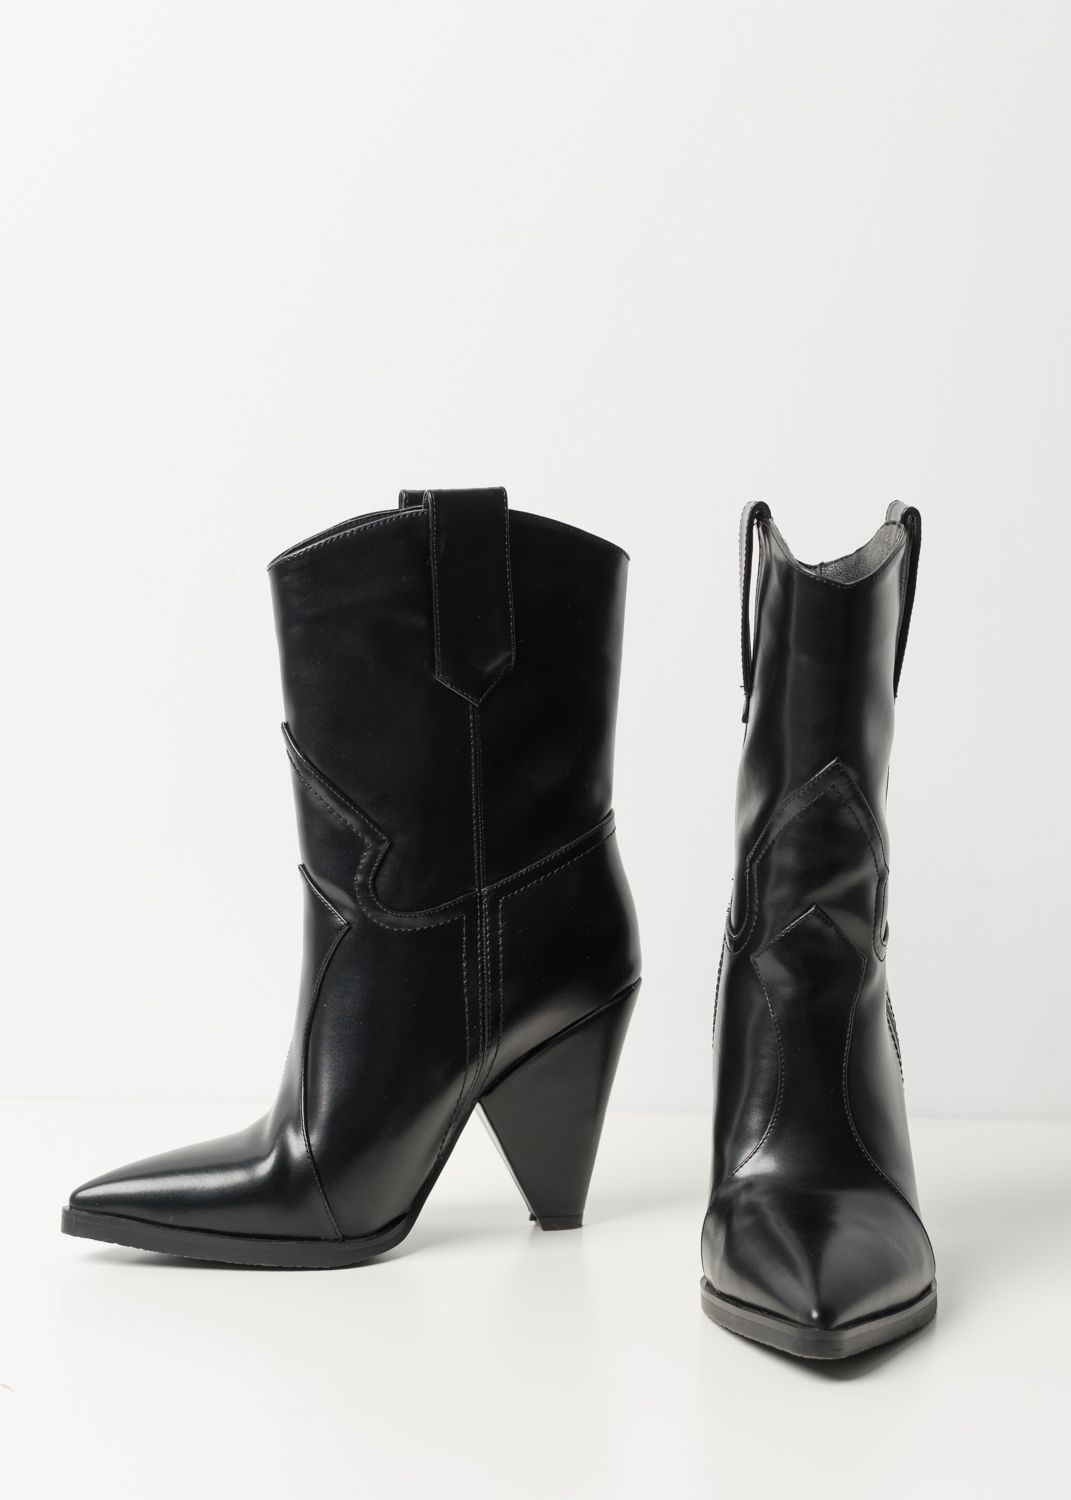 COWBOY HEEL ANKLE BOOTS WITH POINTED TOE